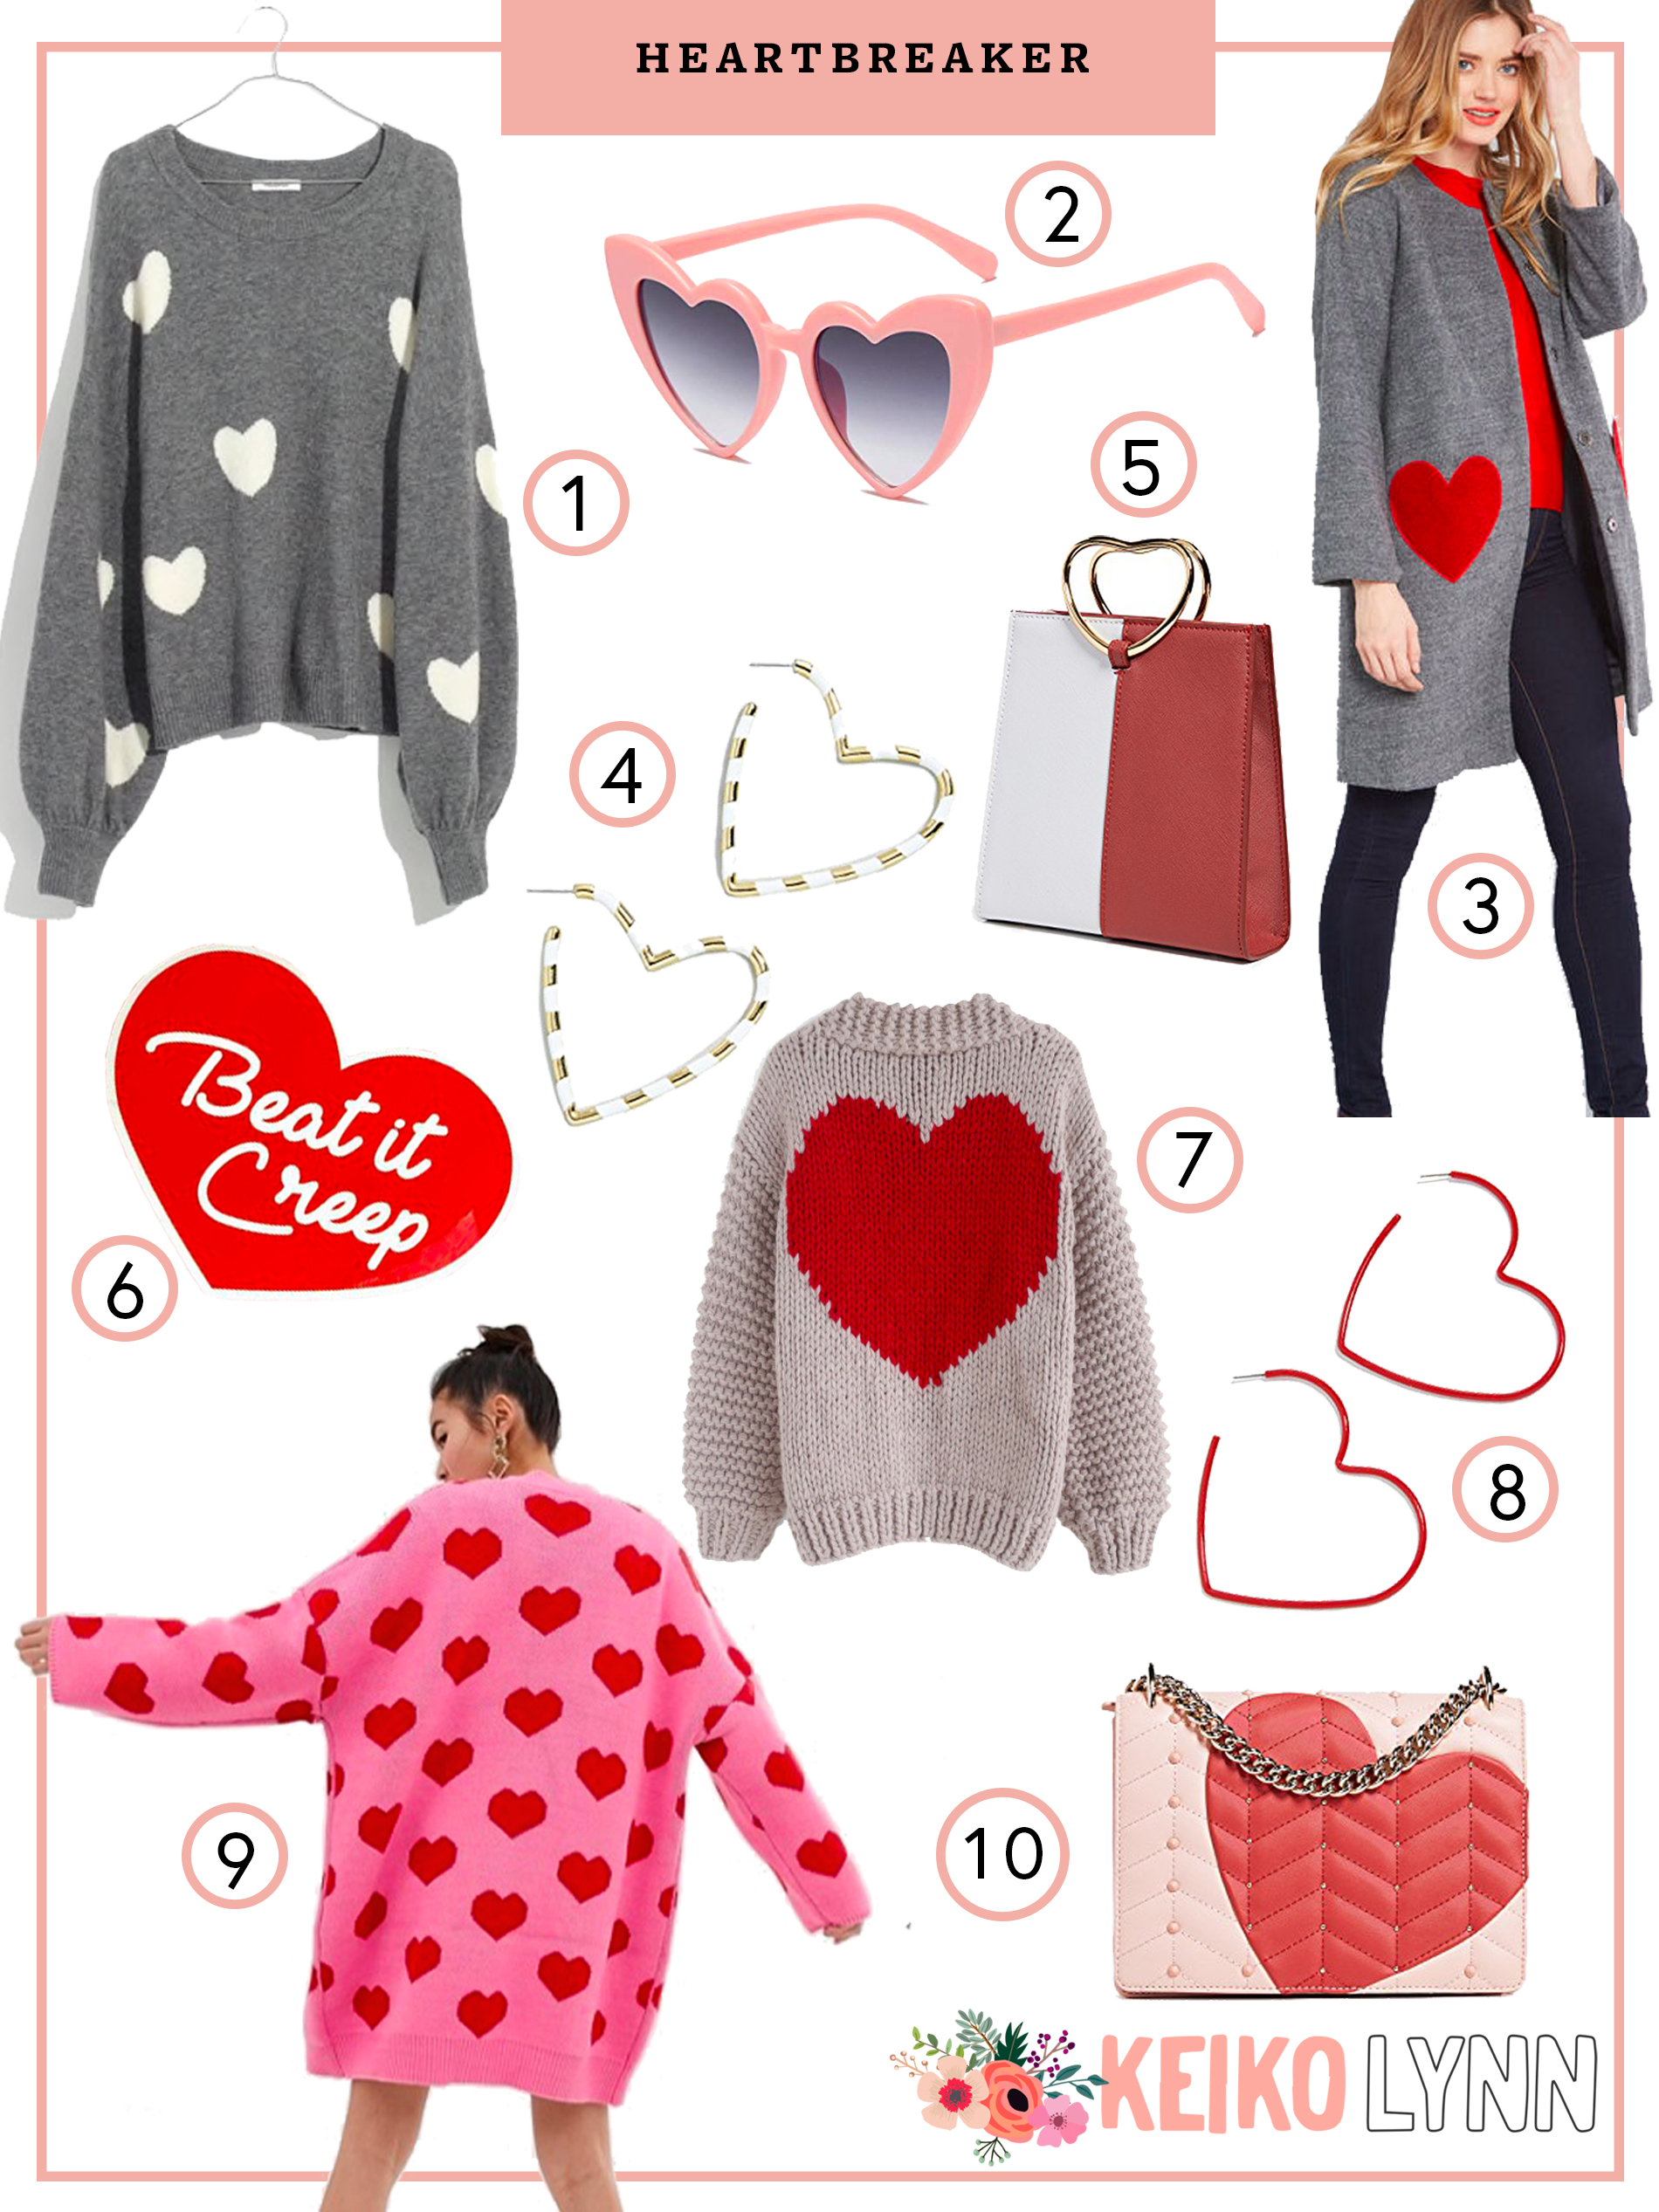 HEARTBREAKER Valentine's Day shopping guide: